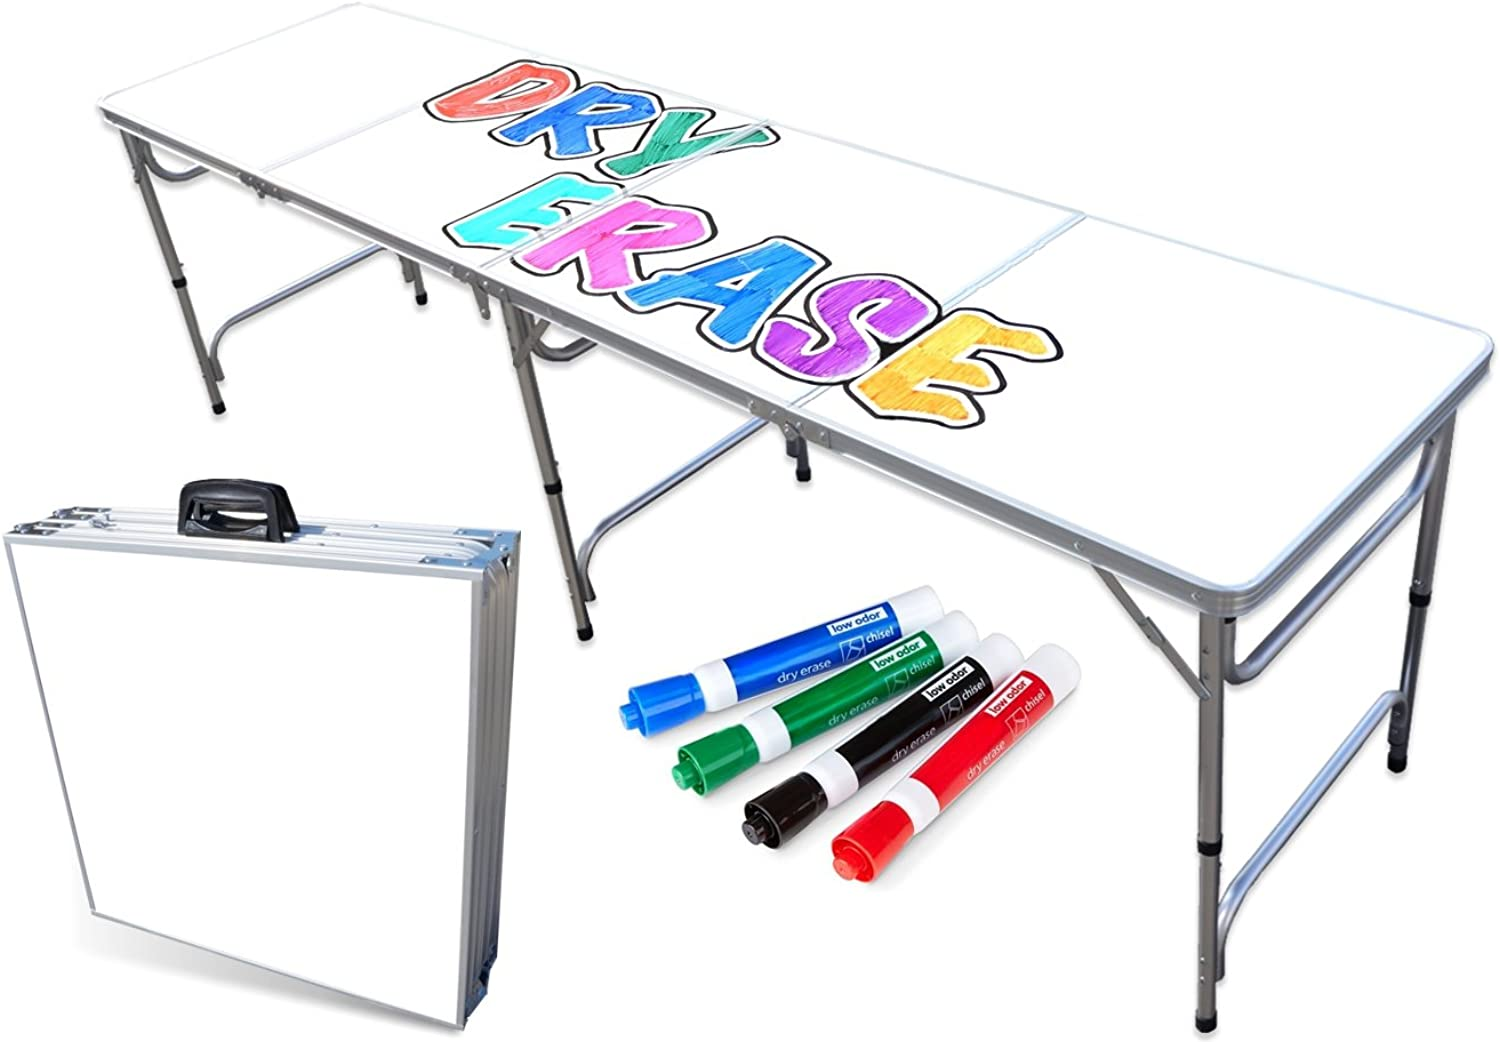 PartyPongTables  Portable Folding Table w Dry Erase Surface & Markers for Art, Classroom, Parties, and More 4 ft or 8 ft